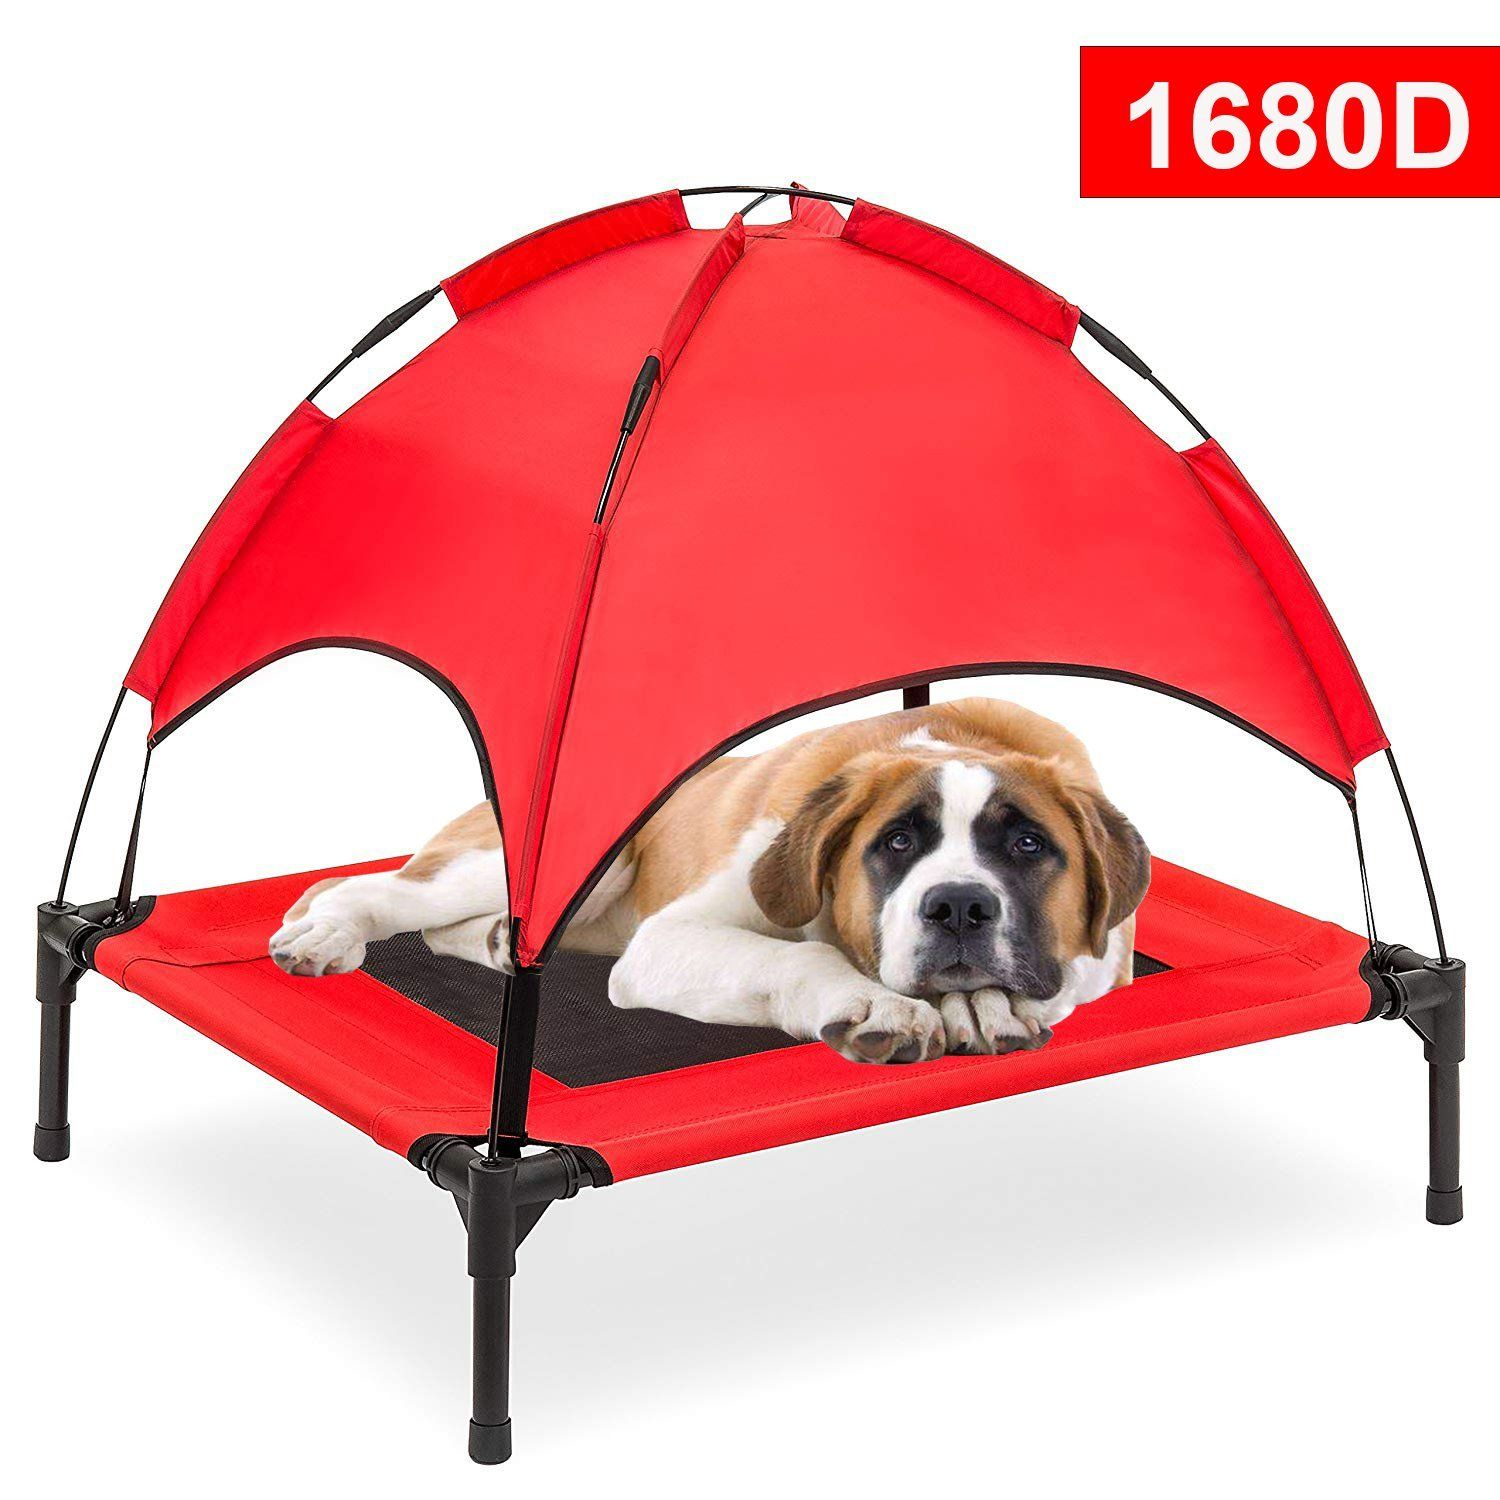 Reliancer Large 30 Elevated Dog Cot With Canopy Shade 1680d Oxford